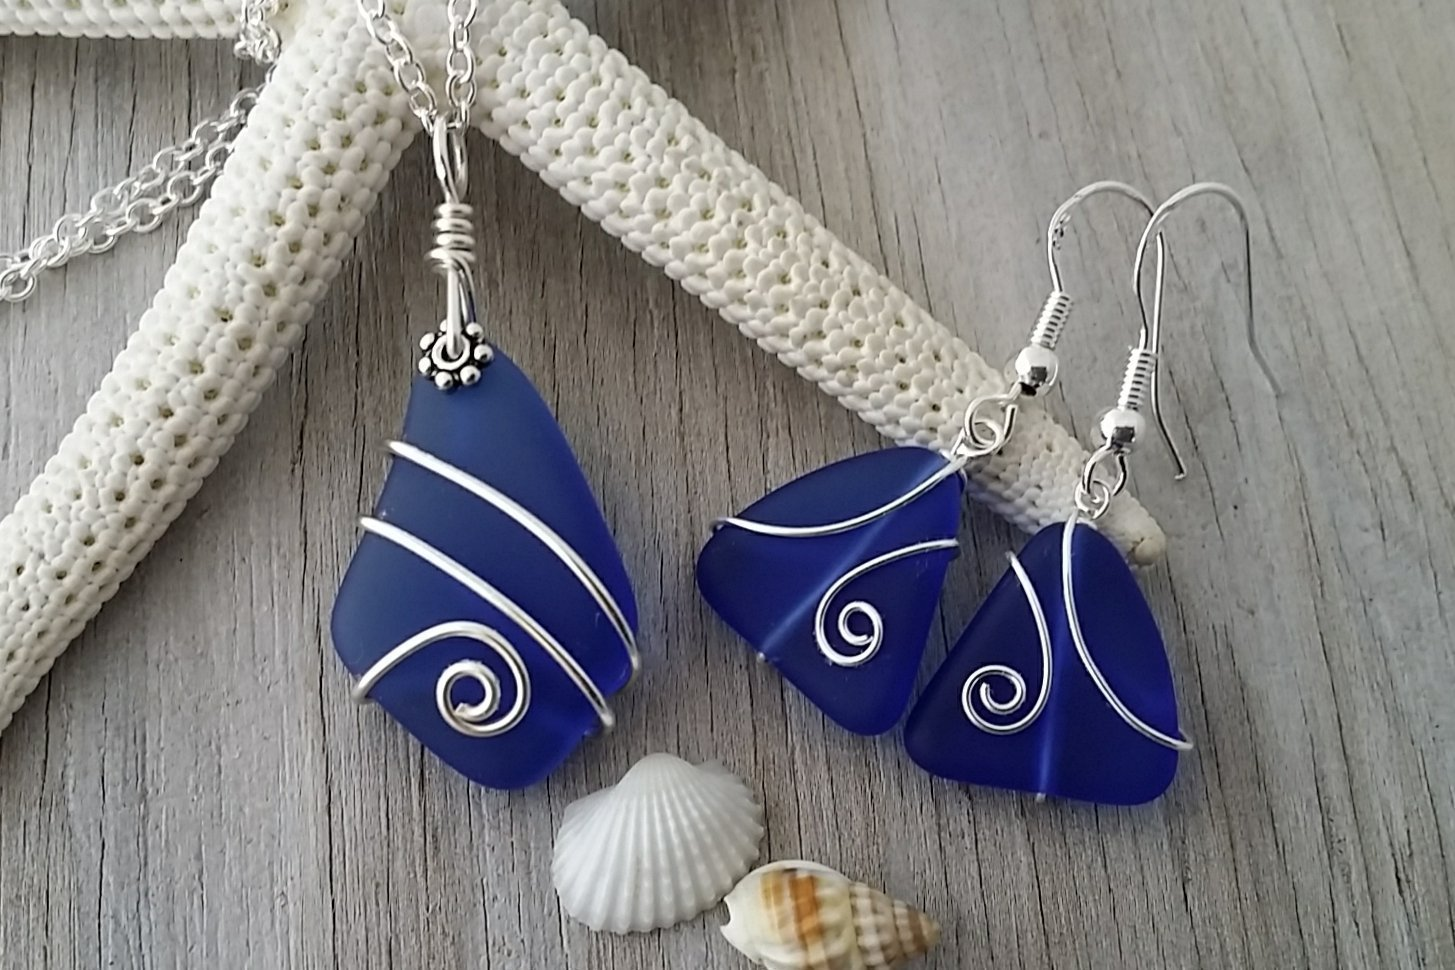 Handmade in Hawaii, wire wrapped cobalt/Sapphire blue sea glass necklace + earrings jewelry set,''September Birthstone'', sterling silver chain, FREE gift wrap, FREE gift message, FREE shipping